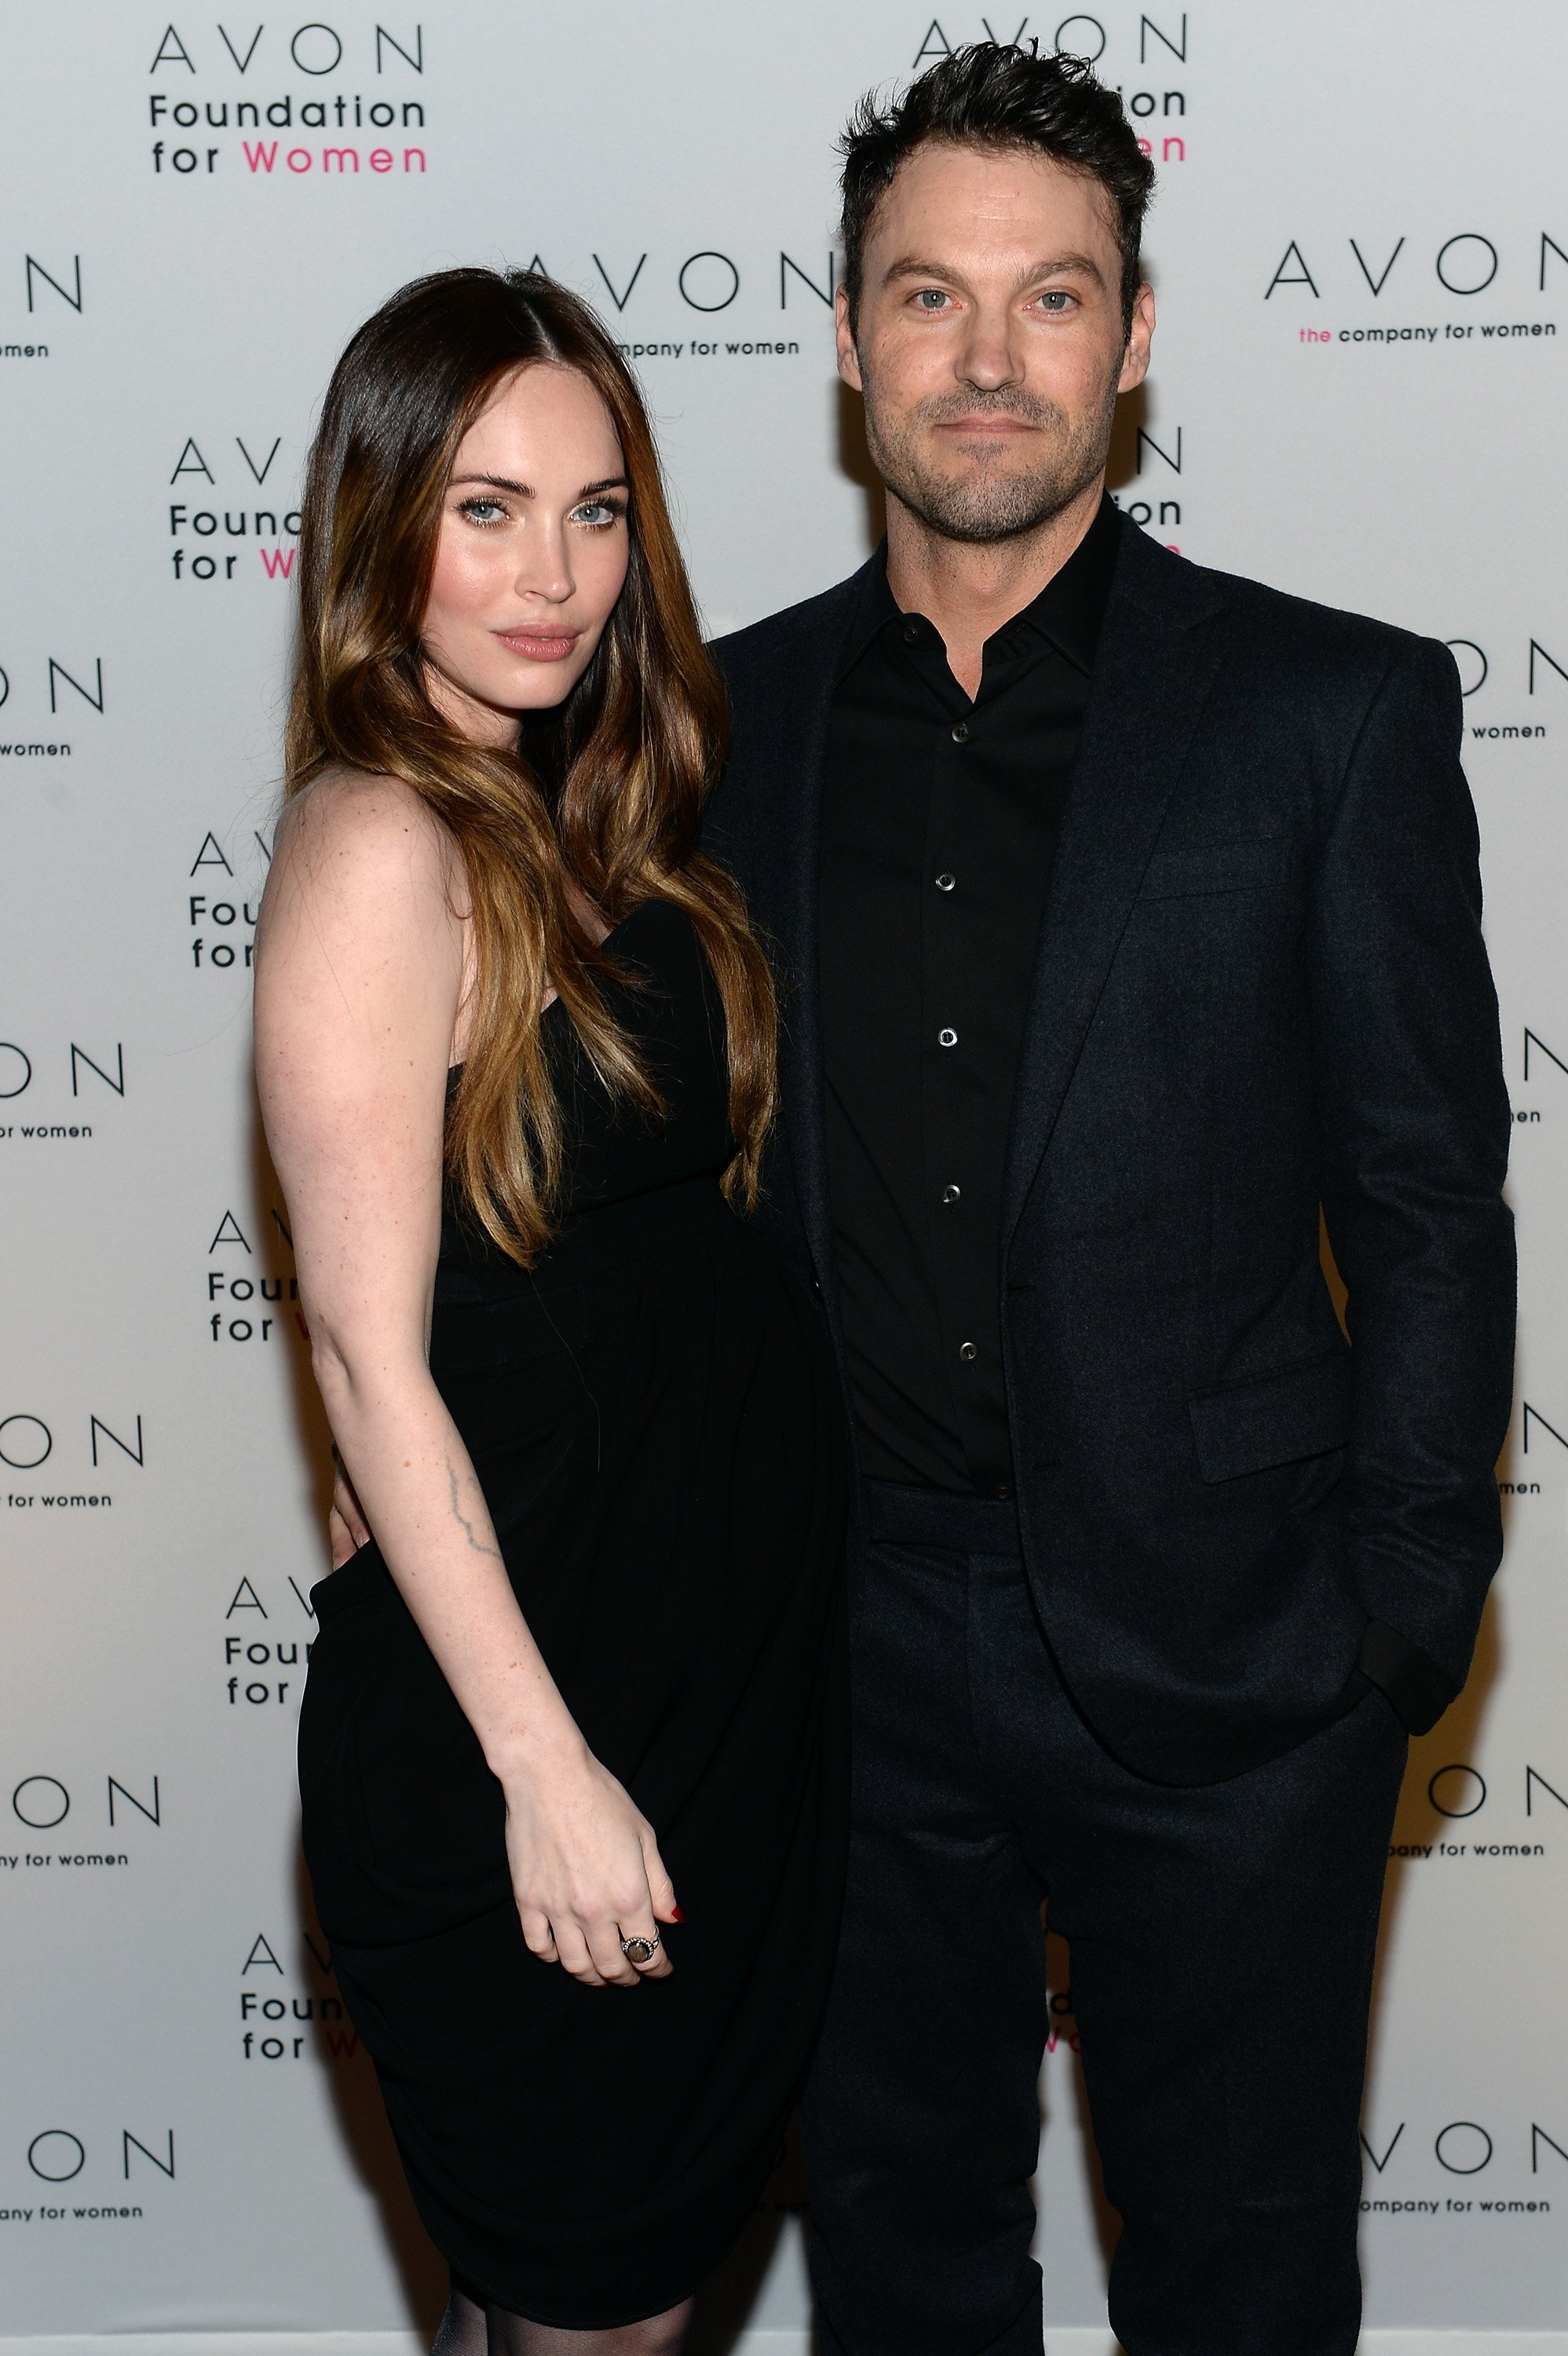 Megan Fox and Brian Austin Green at The Morgan Library & Museum in New York City on November 25, 2013. | Source: Getty Images.